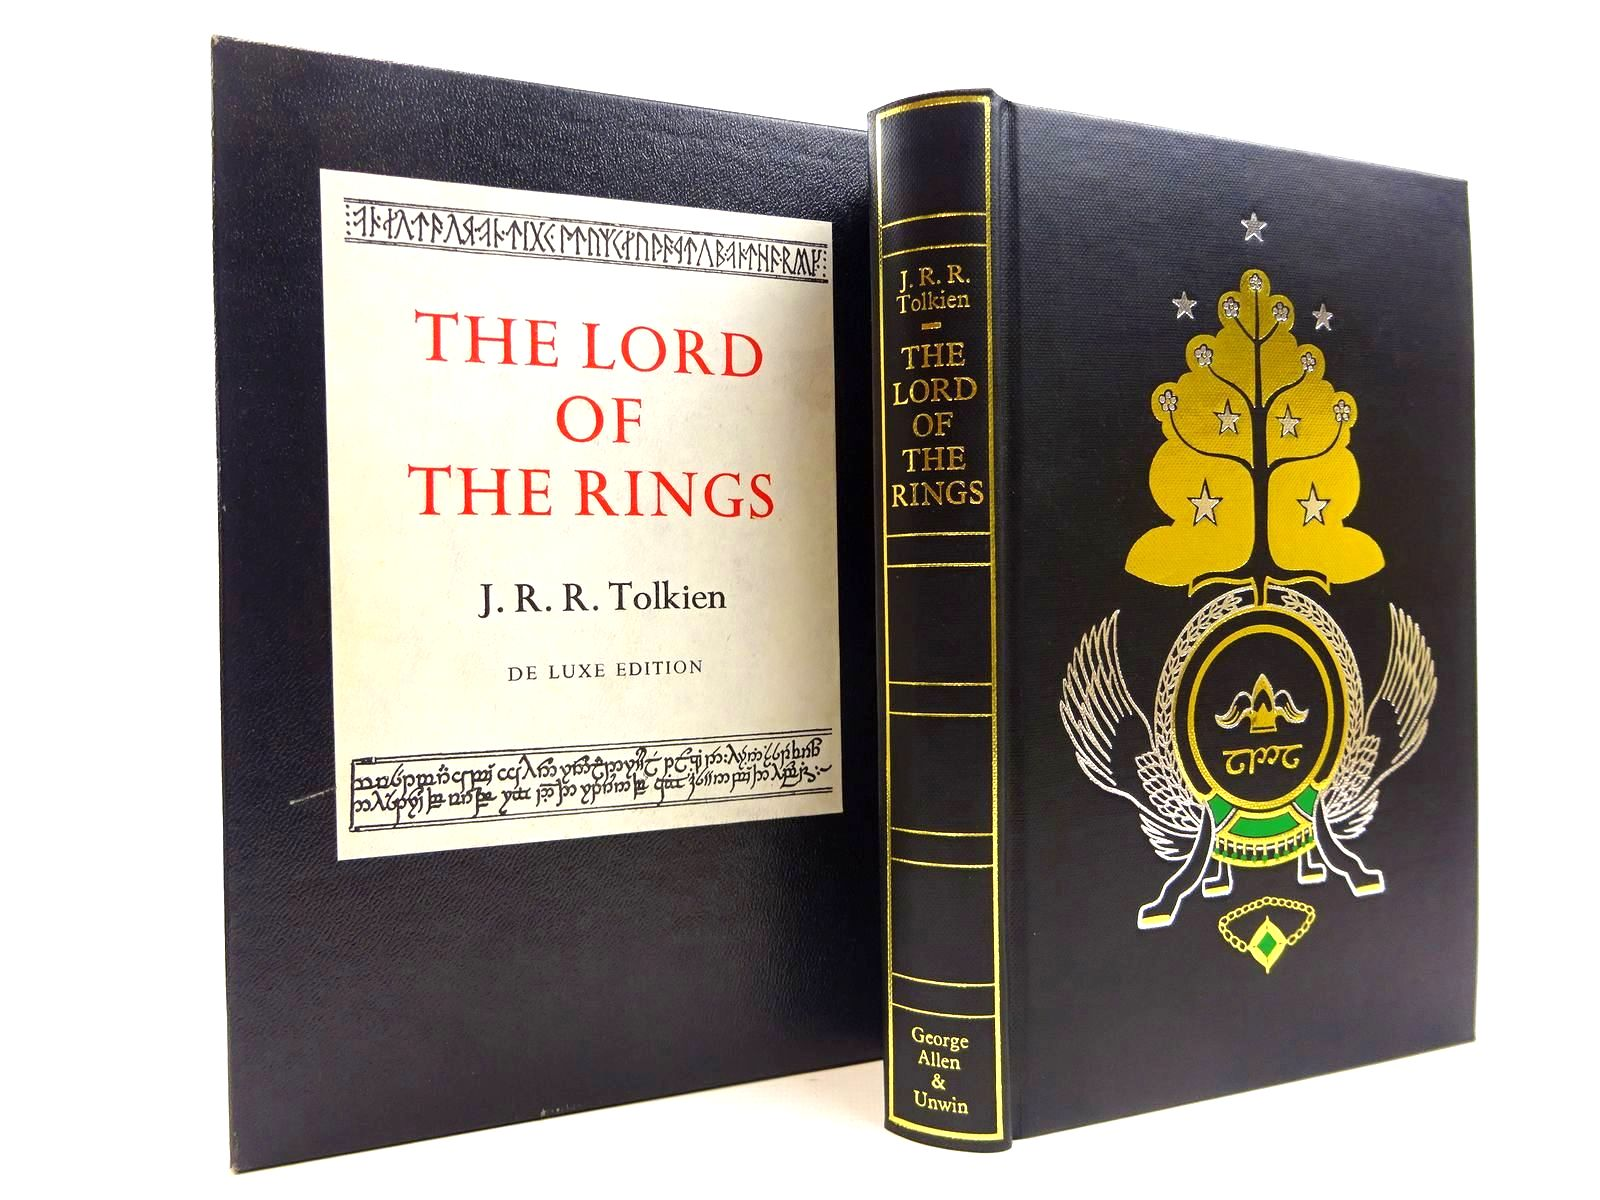 Photo of THE LORD OF THE RINGS written by Tolkien, J.R.R. published by George Allen & Unwin Ltd. (STOCK CODE: 2130839)  for sale by Stella & Rose's Books